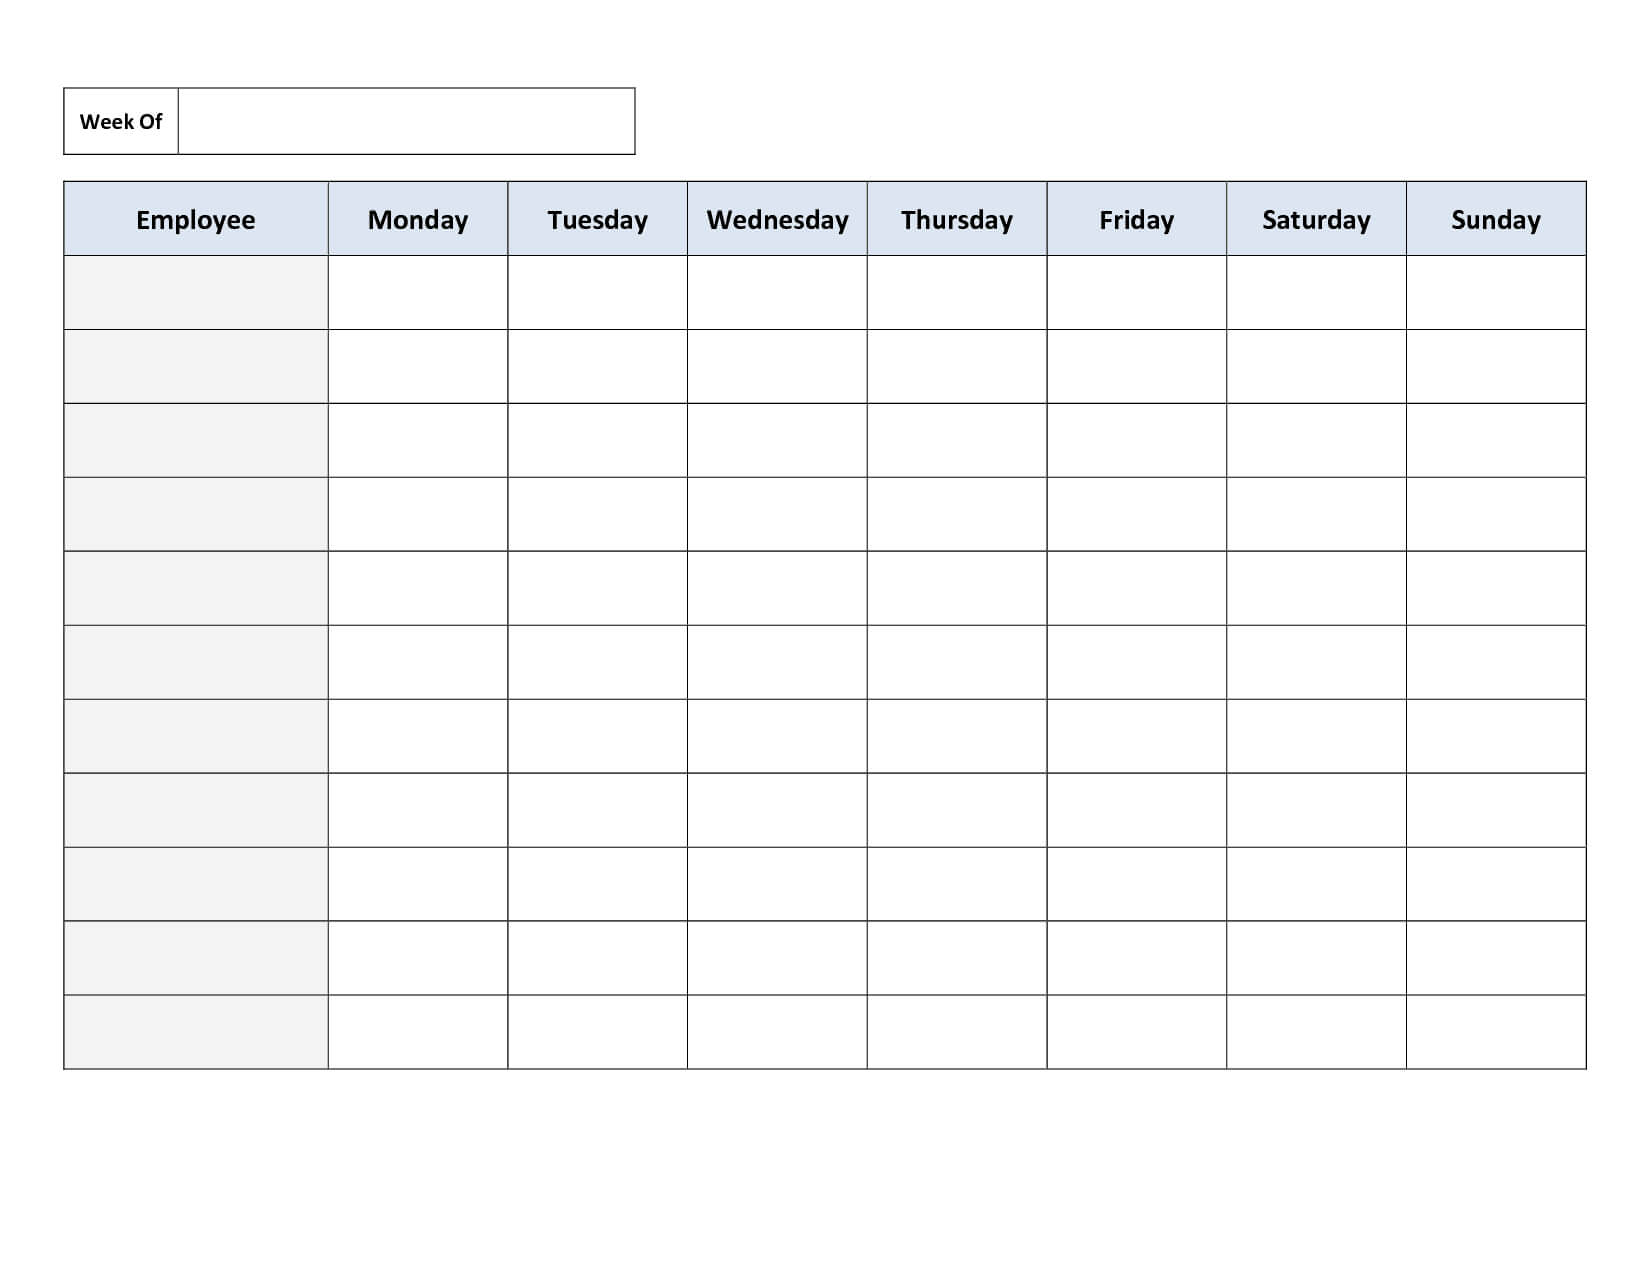 Daily Call Report Format For Medical Representative And Free Pertaining To Sales Rep Call Report Template